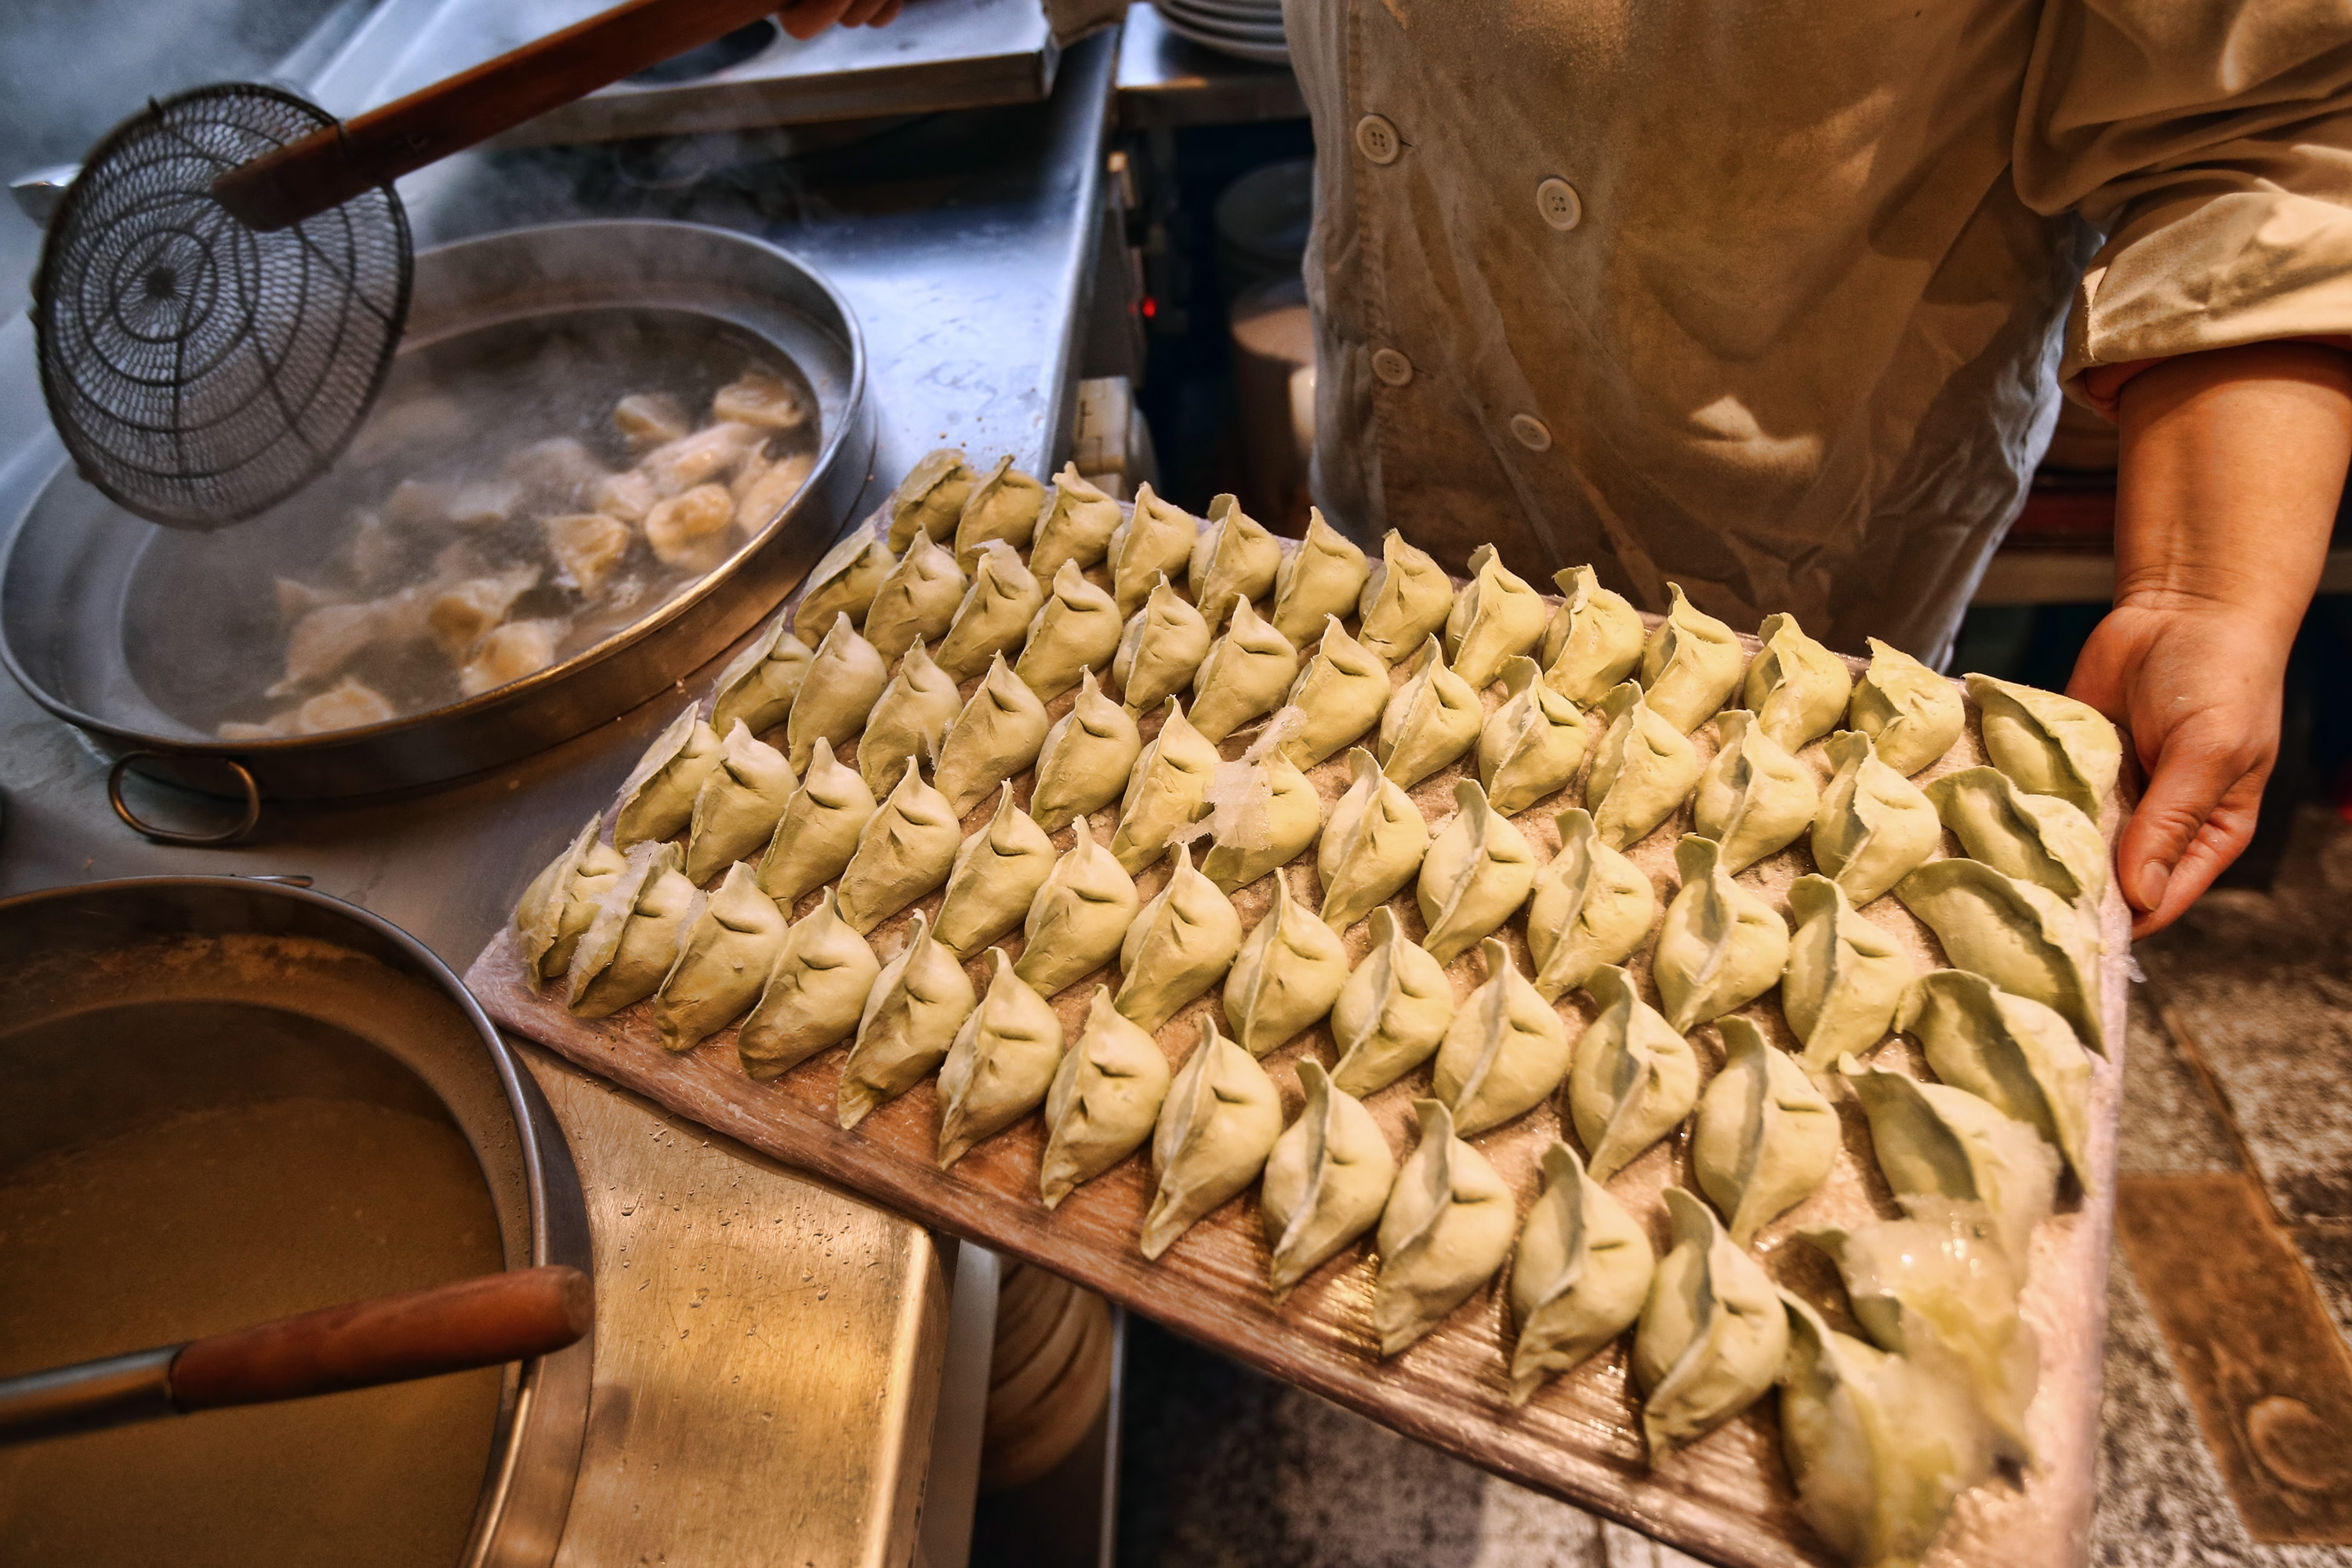 A chef prepares dumplings in a restaurant in China Town on Feb. 18, 2015 in London, England. Carl Court—Getty Images